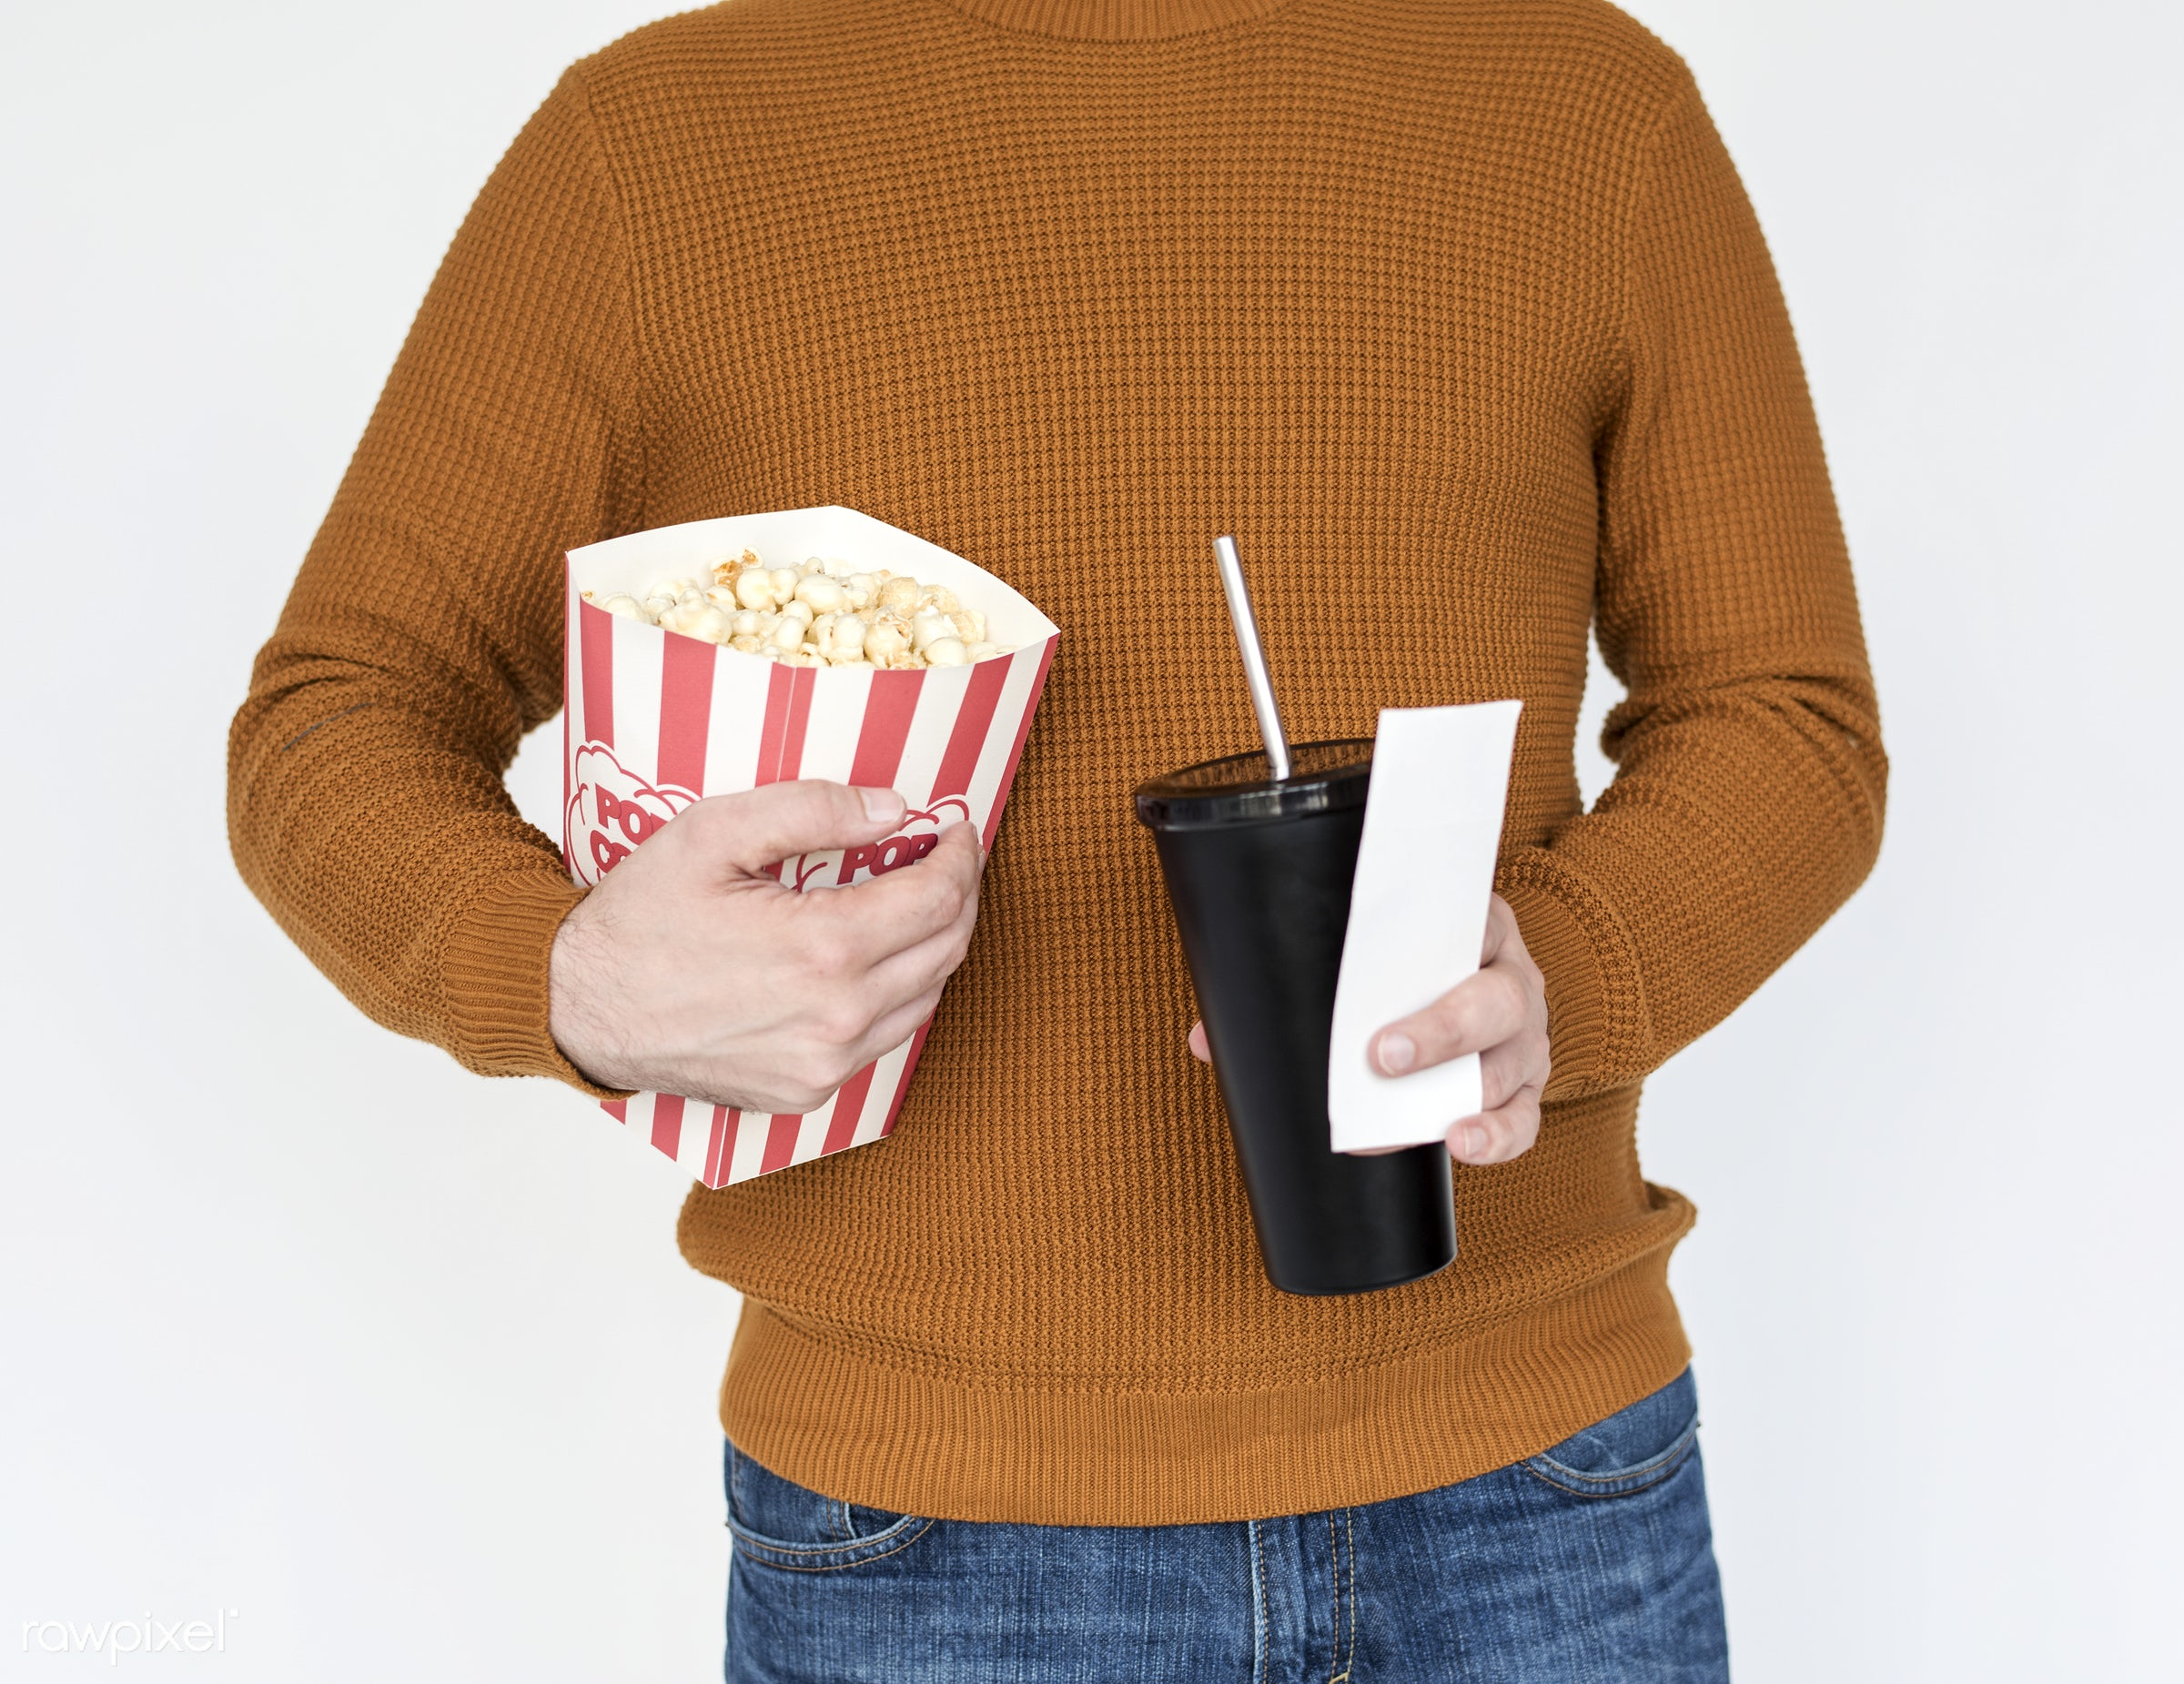 studio, popcorn, expression, person, model, isolated on white, race, people, style, casual, lifestyle, men, man, isolated,...